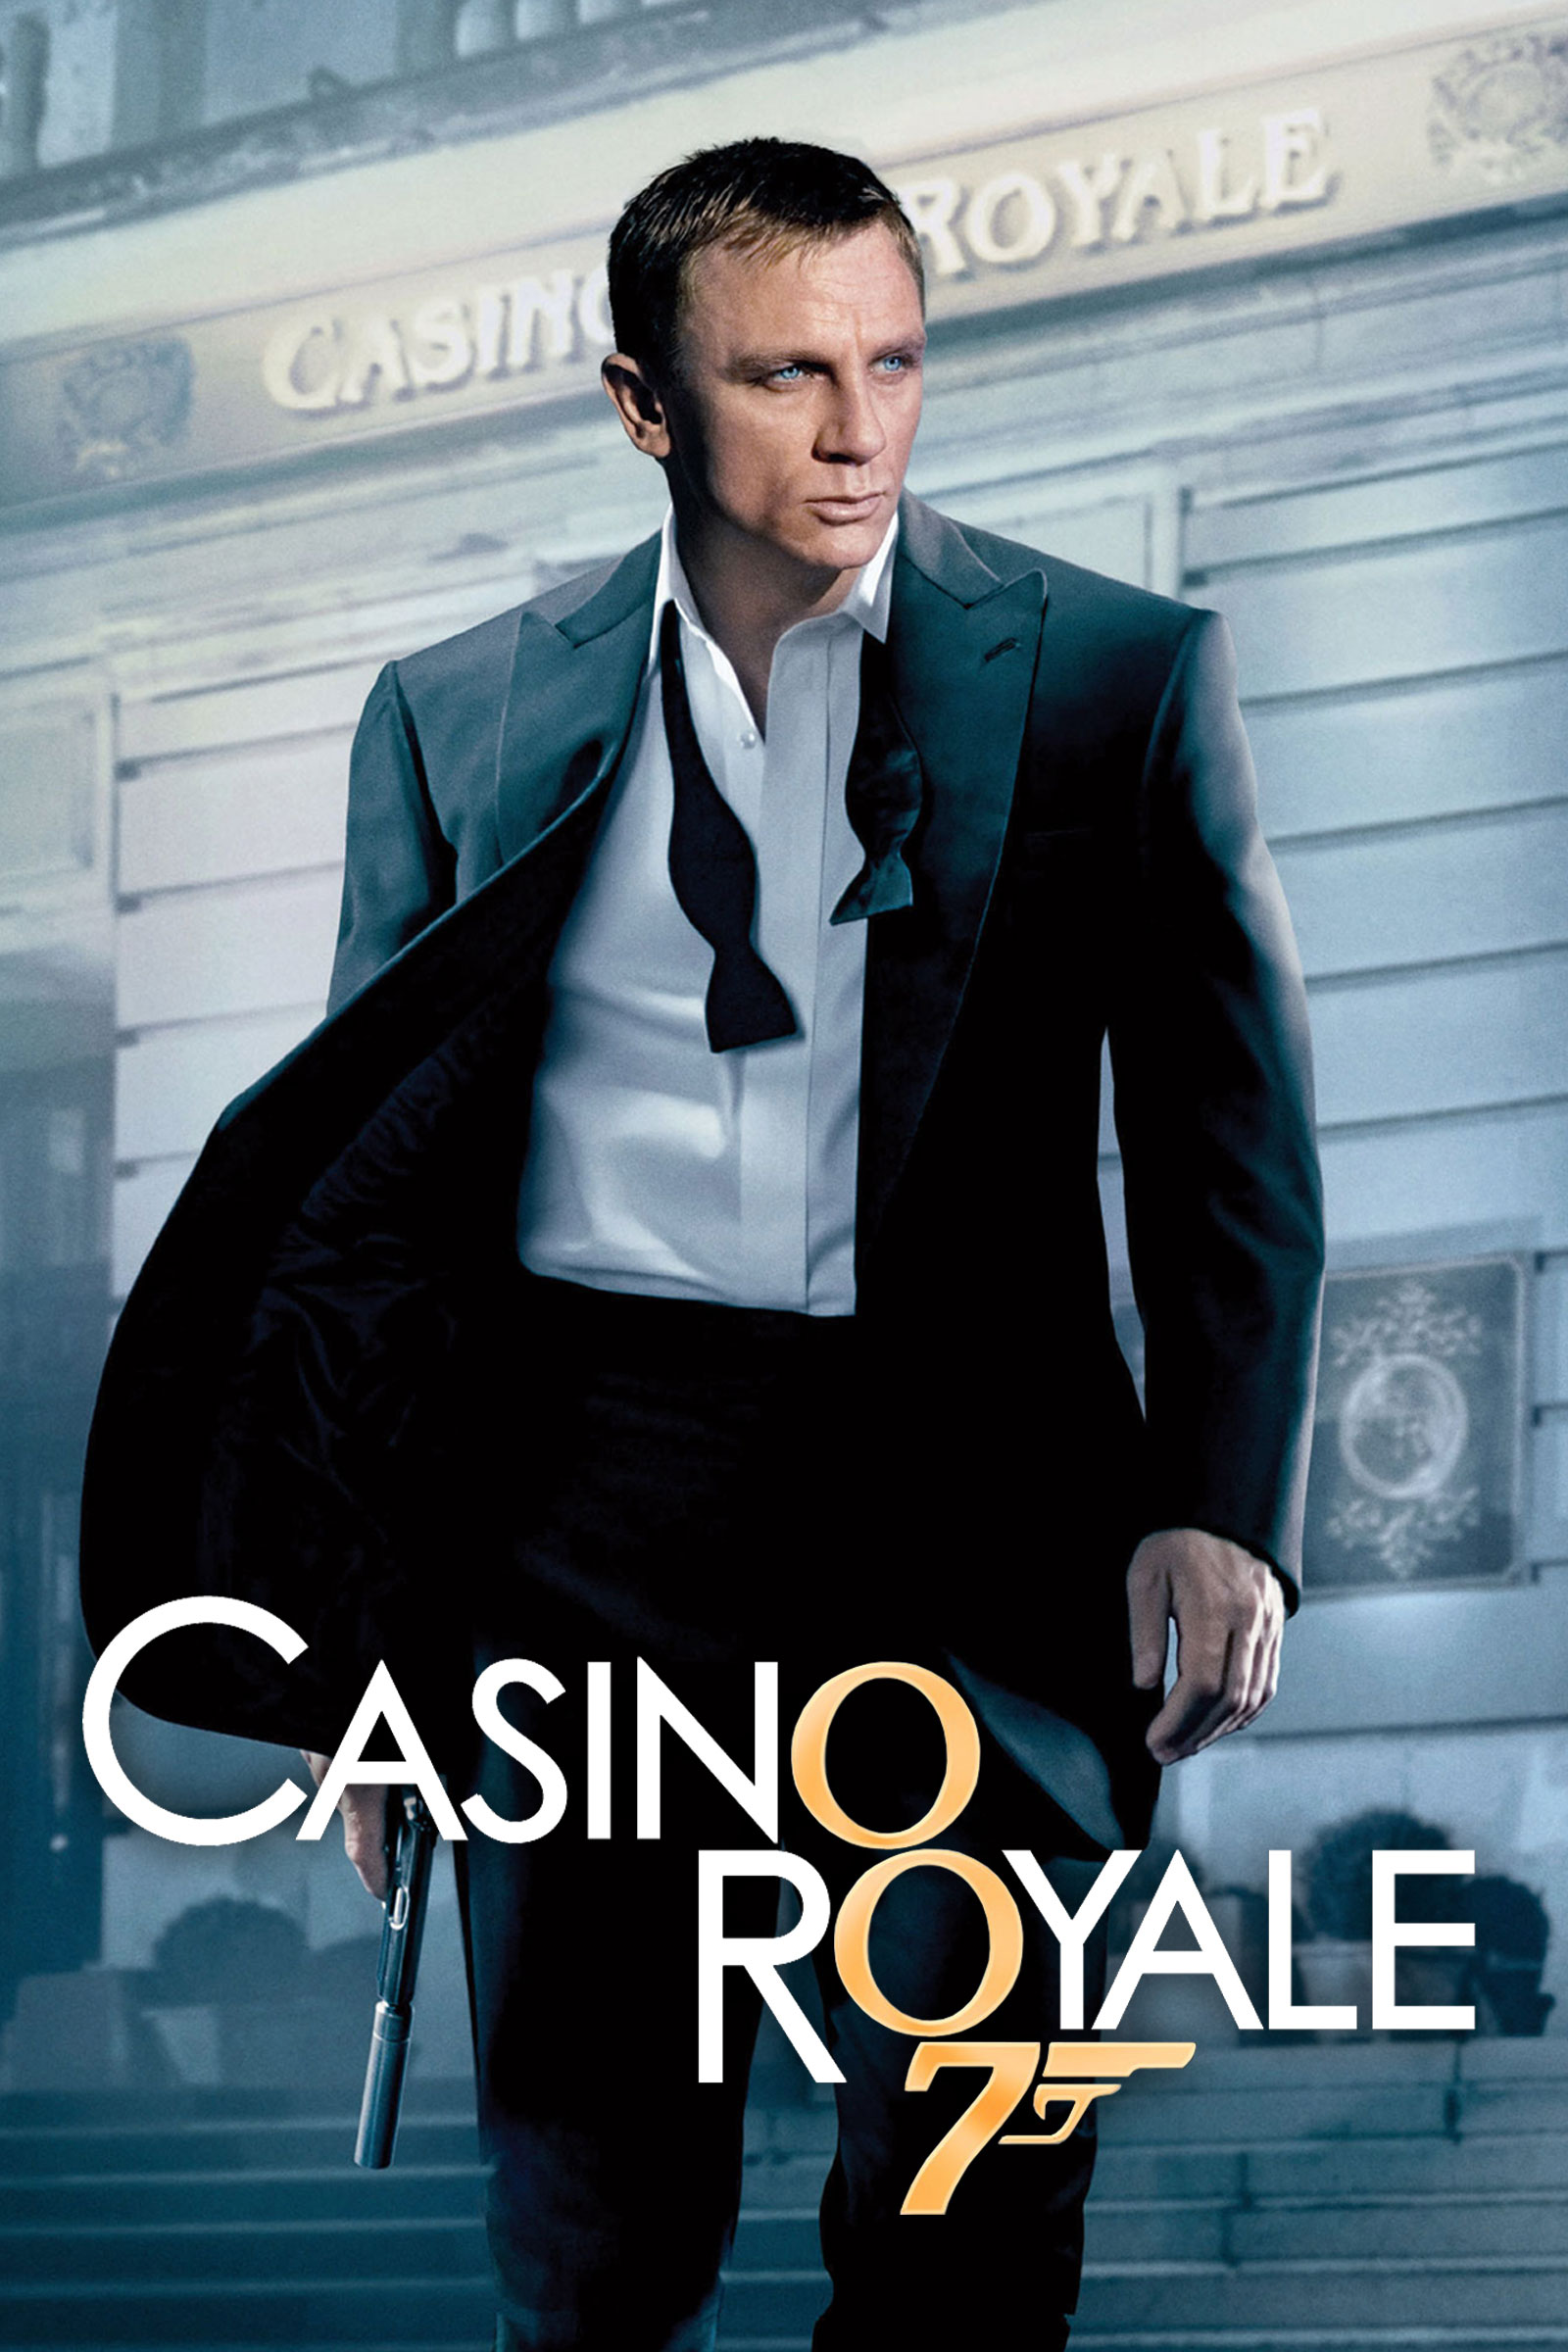 james bond casino royale full movie online casino game com